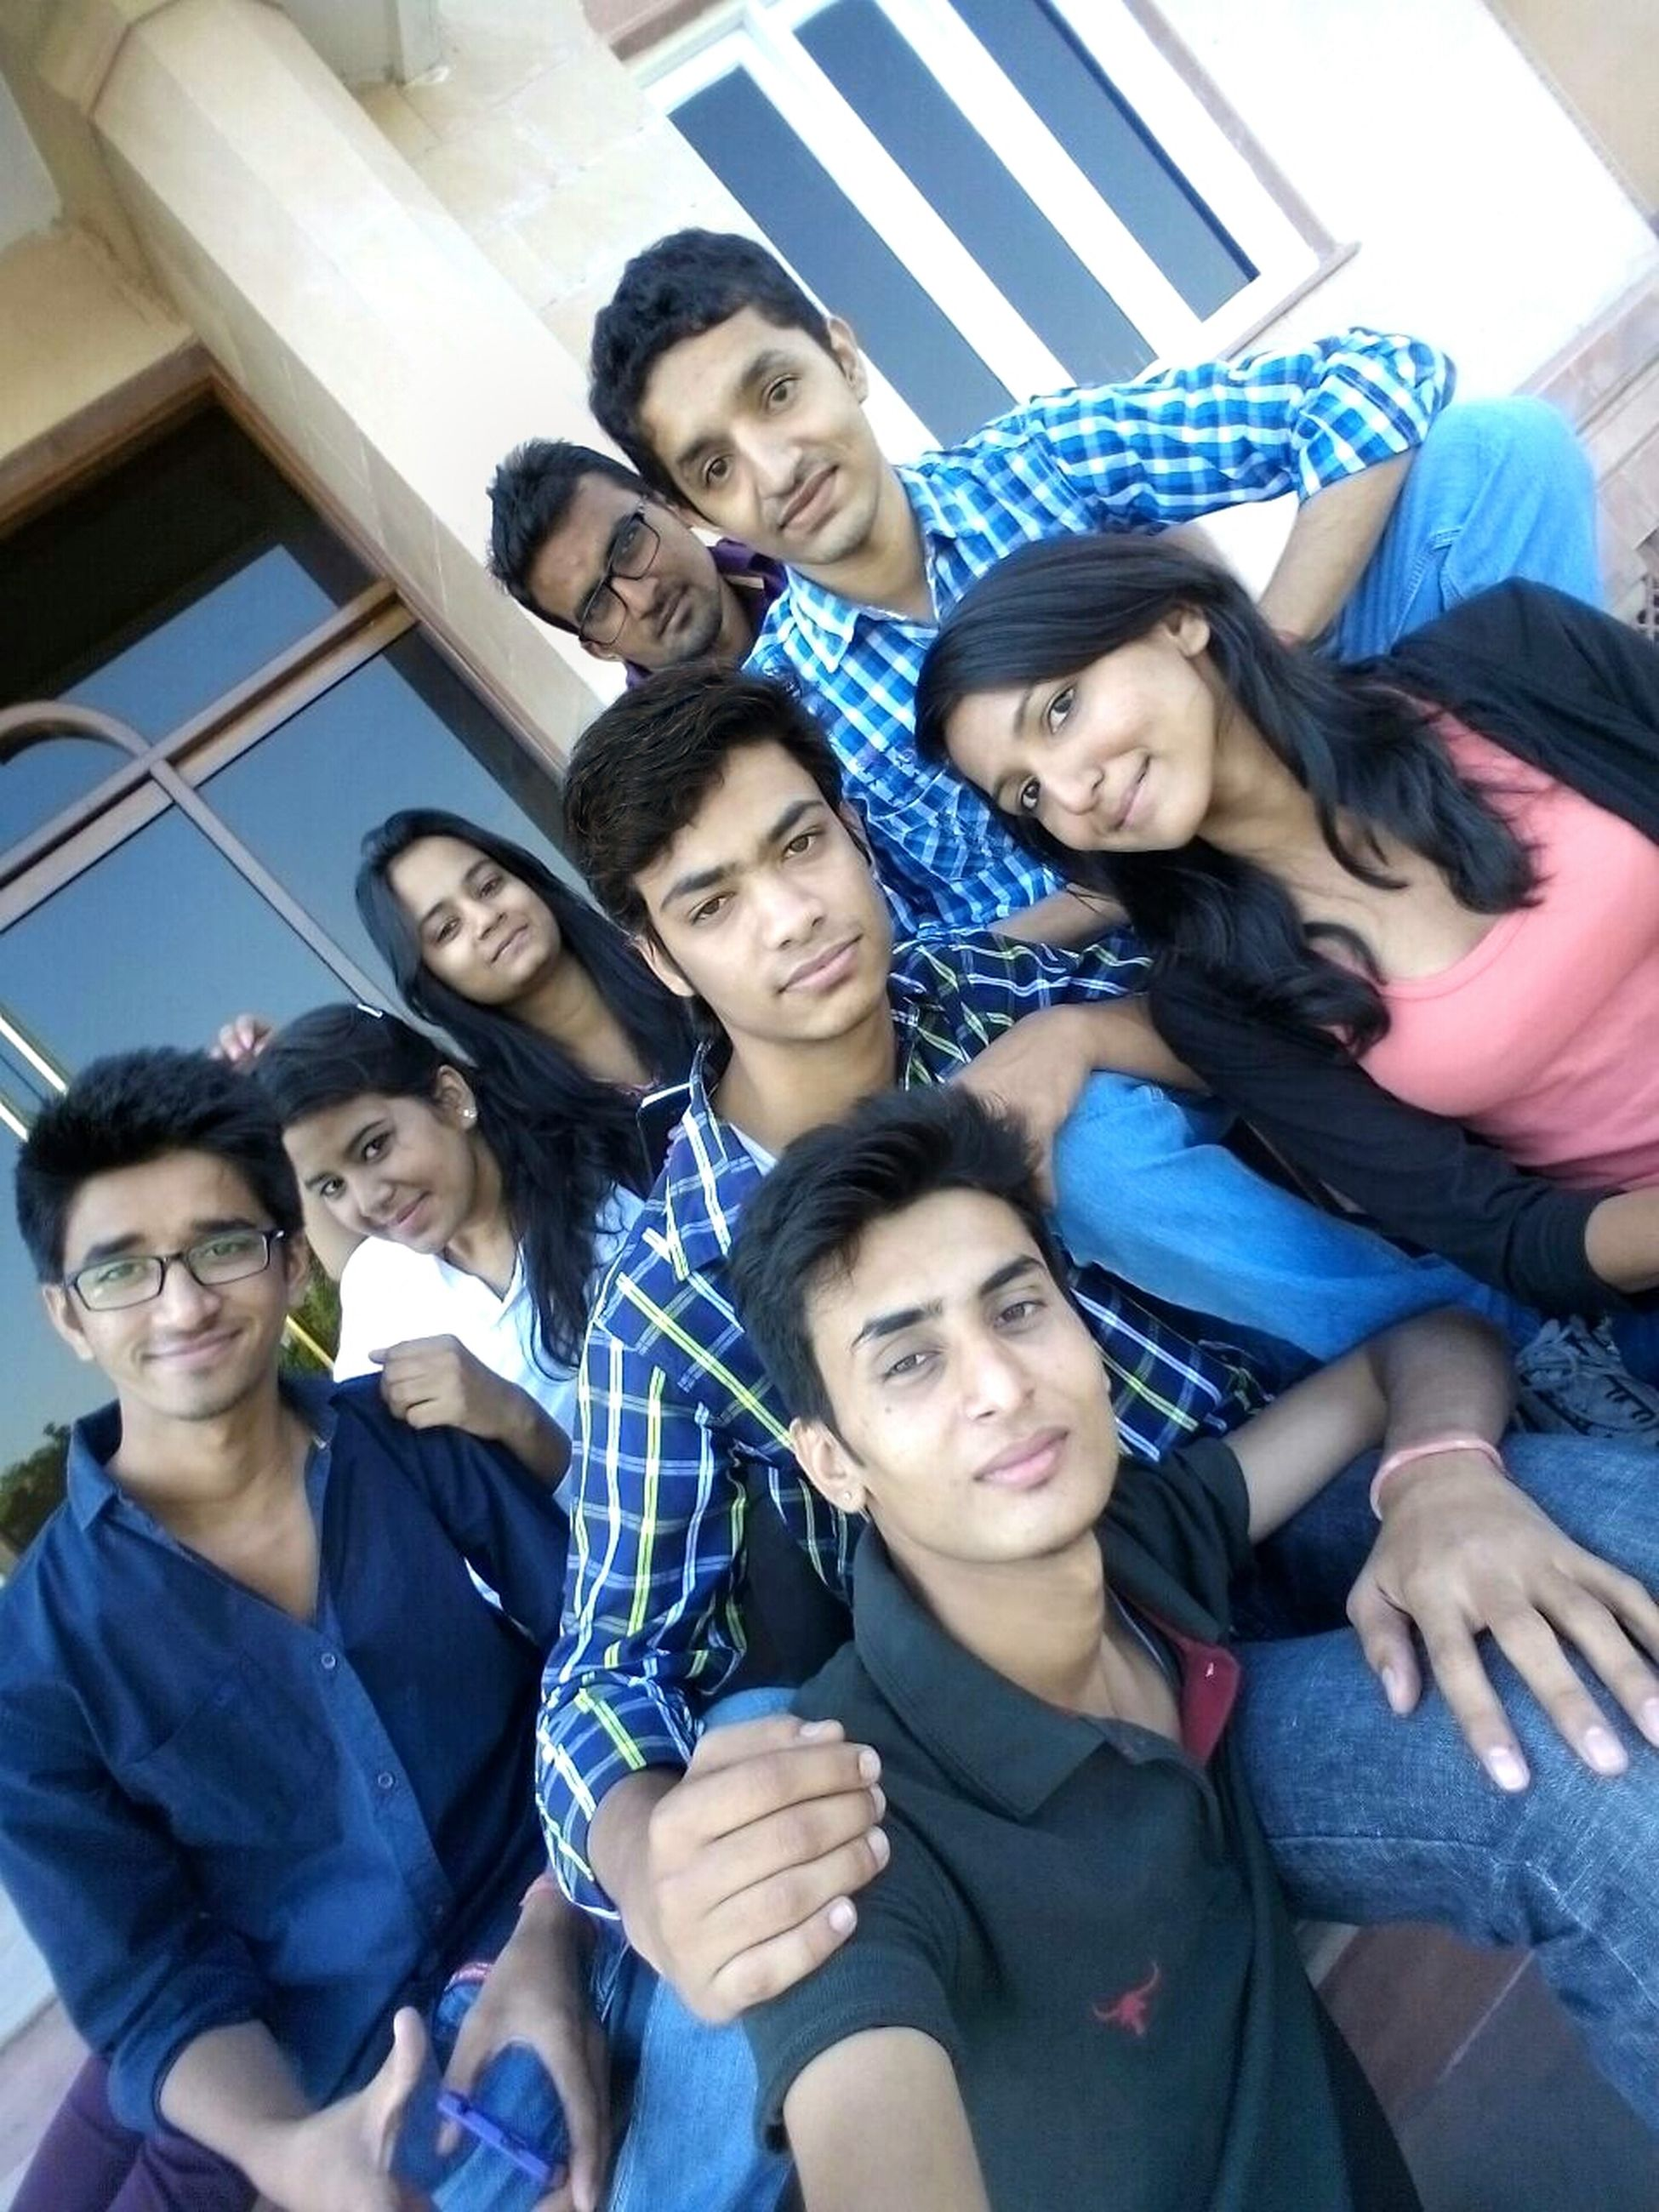 togetherness, lifestyles, bonding, person, leisure activity, happiness, love, portrait, smiling, friendship, looking at camera, young adult, young men, casual clothing, family, front view, enjoyment, fun